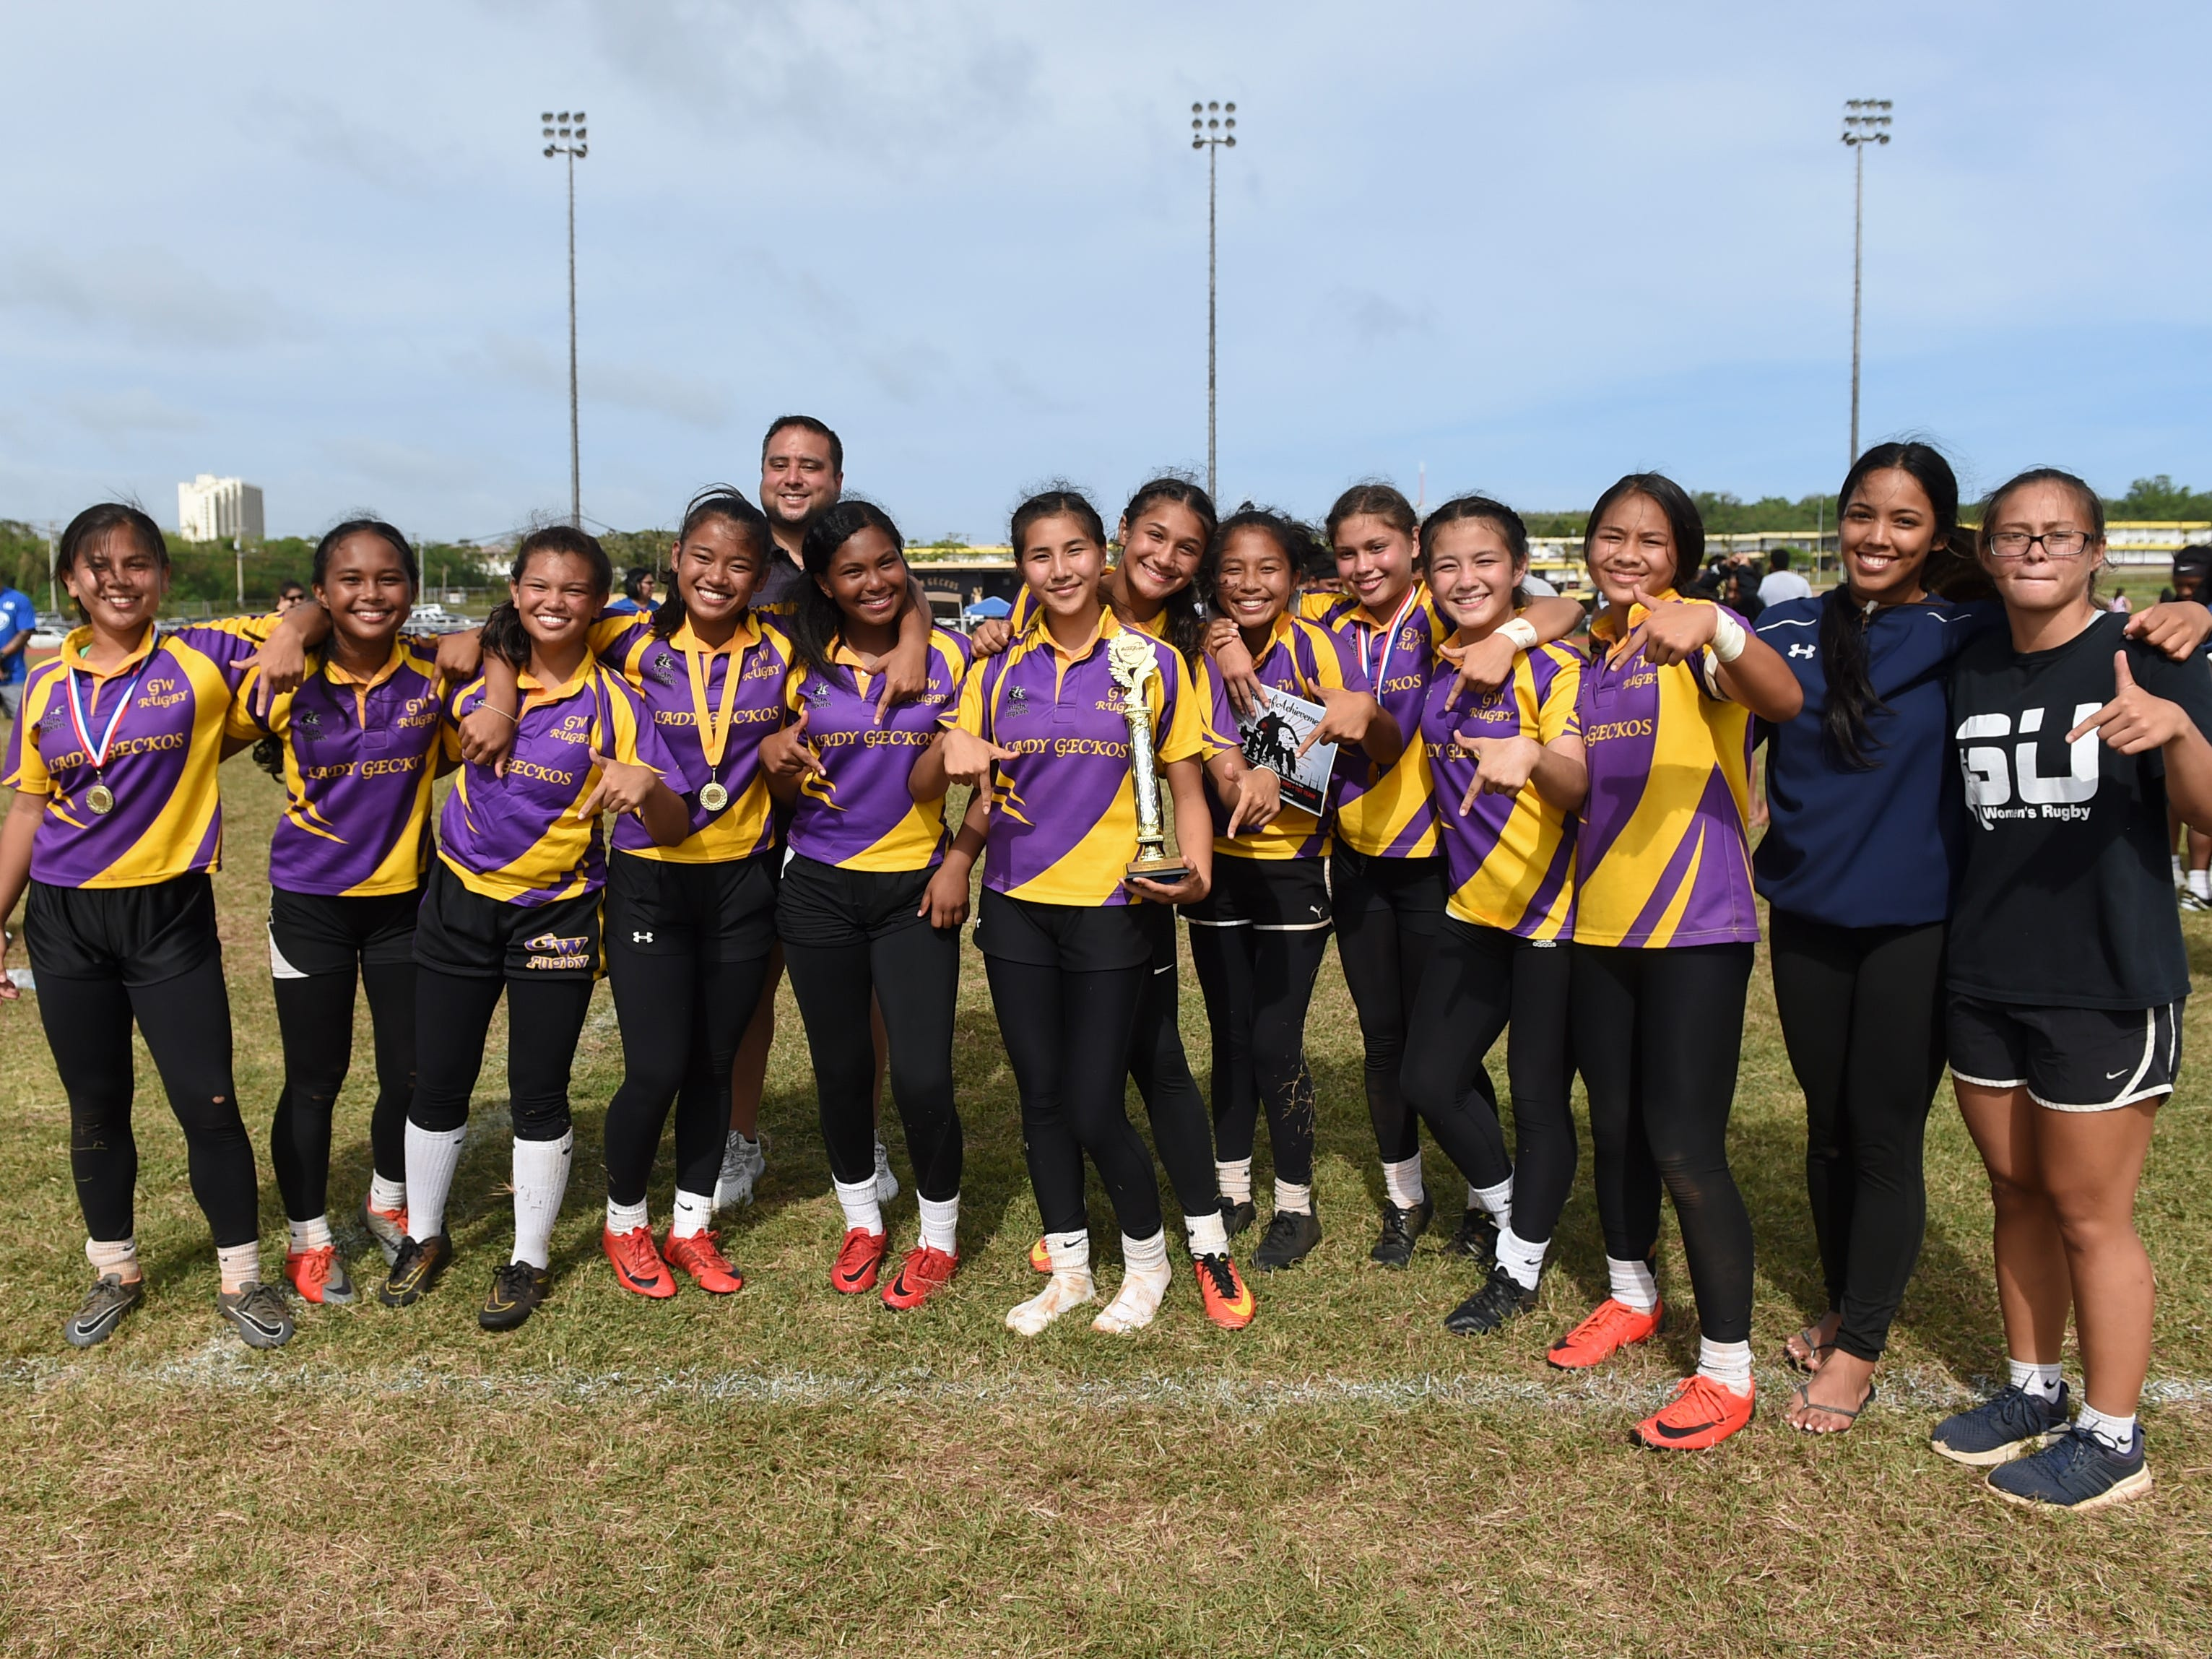 The George Washington Geckos girls rugby team at the George Washington High School Field, March 16, 2019.